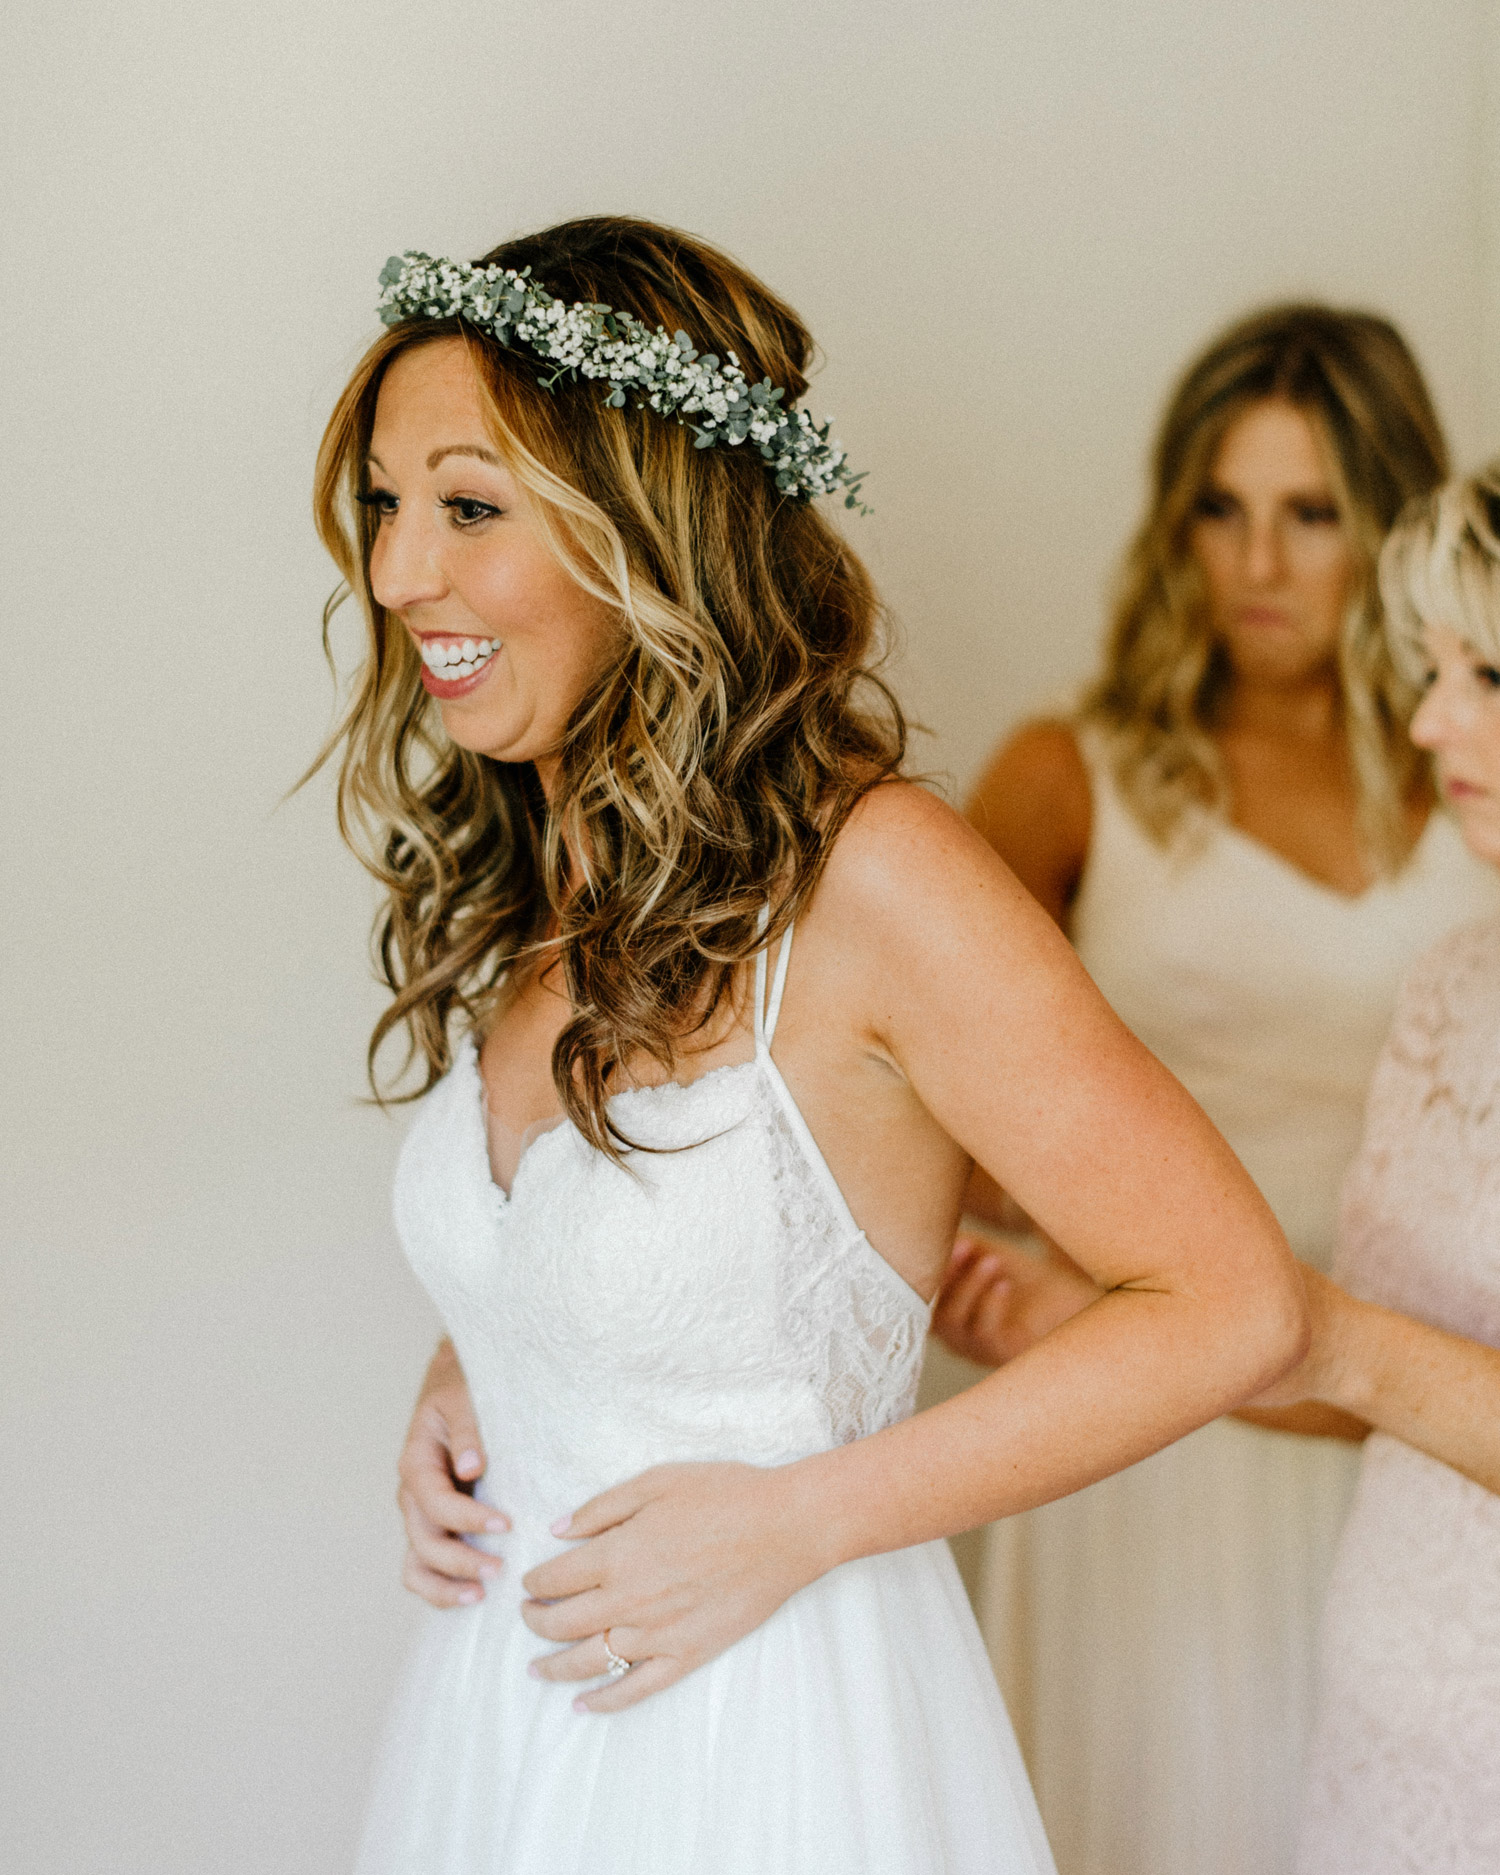 Bride putting her dress on by Geneoh Photography